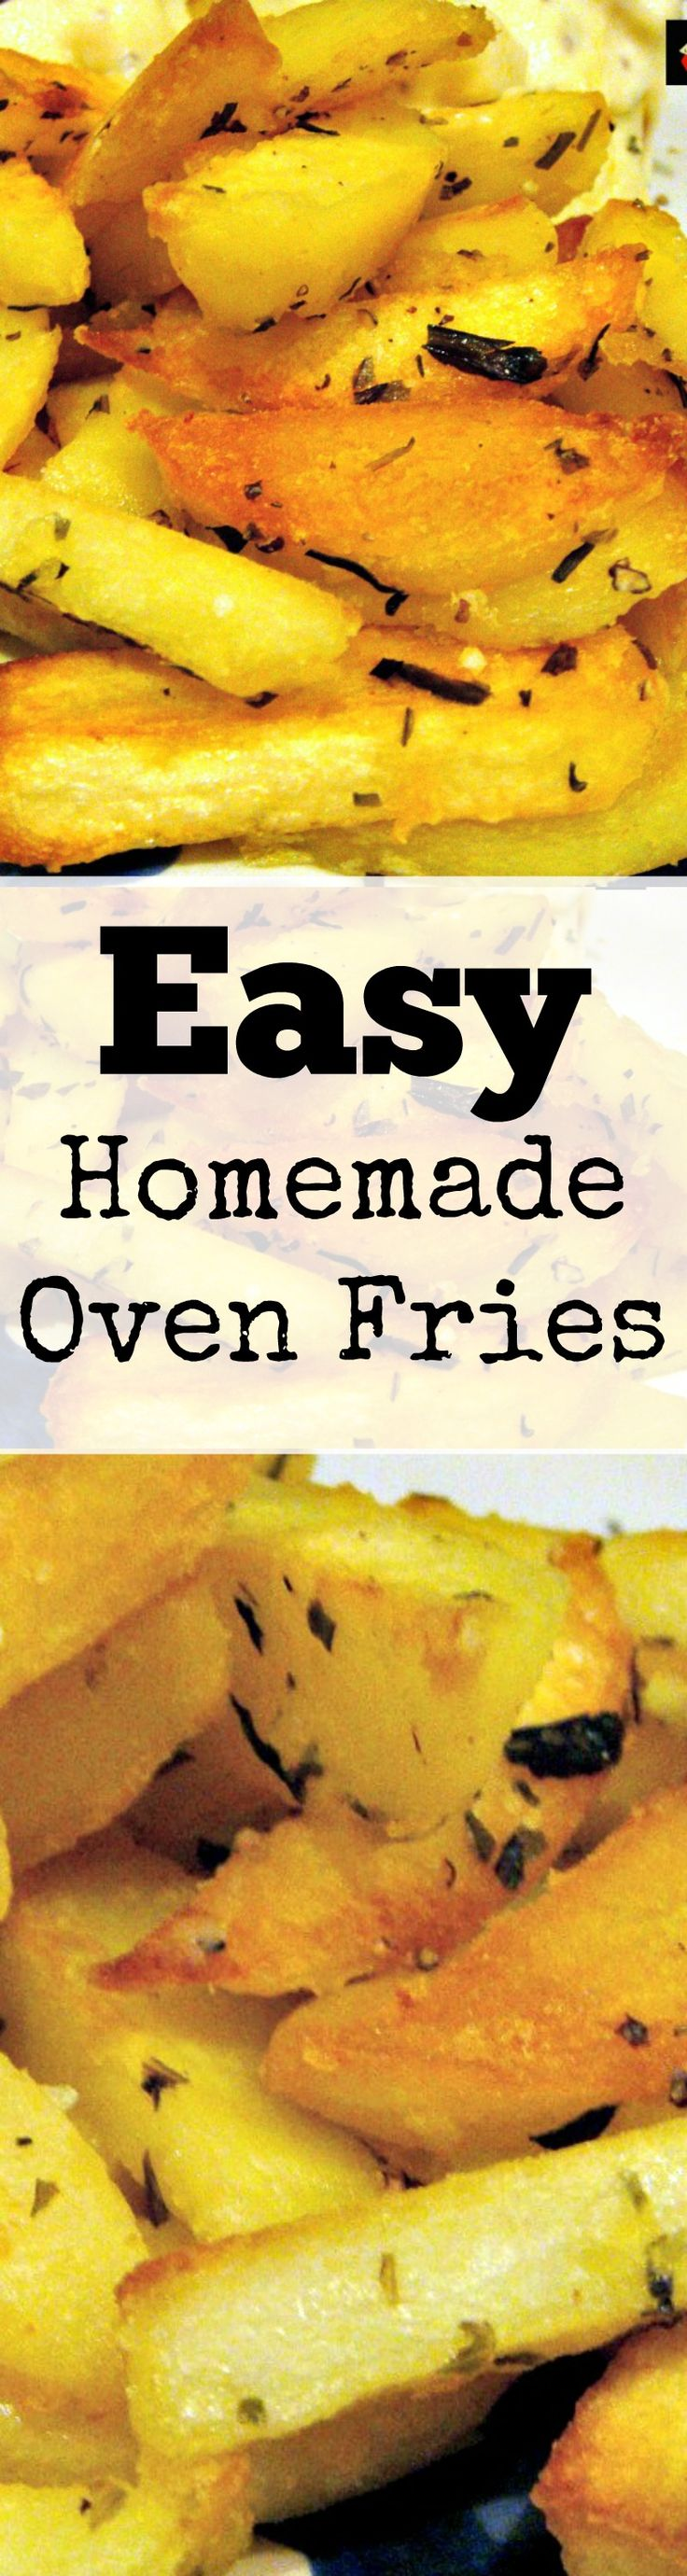 Easy Homemade Oven Fries. Crunchy on the outside, fluffy on the inside! Add your favorite seasonings and hey presto! Super yummy! | Lovefoodies.com